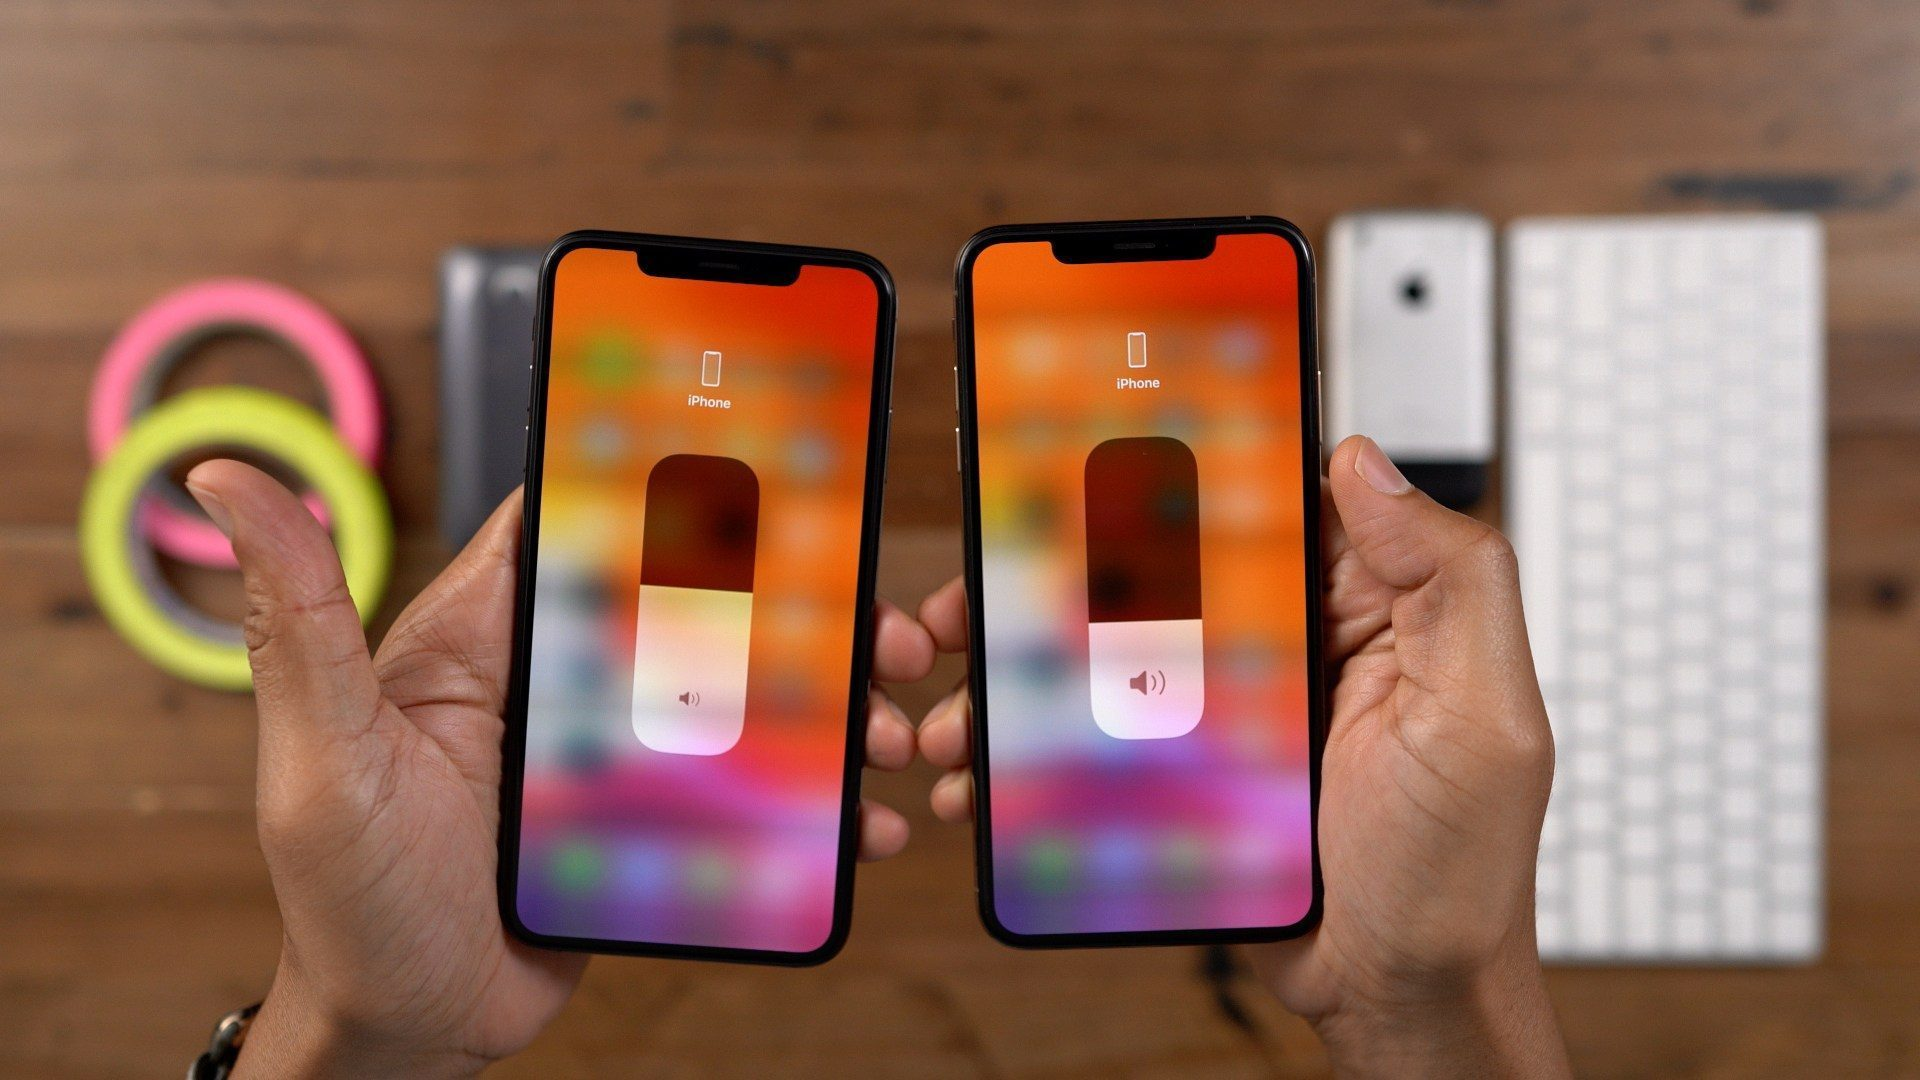 Apple Seeds Fourth Betas of iOS 13.1 and iPadOS 13.1 to Developers and Public Beta Testers